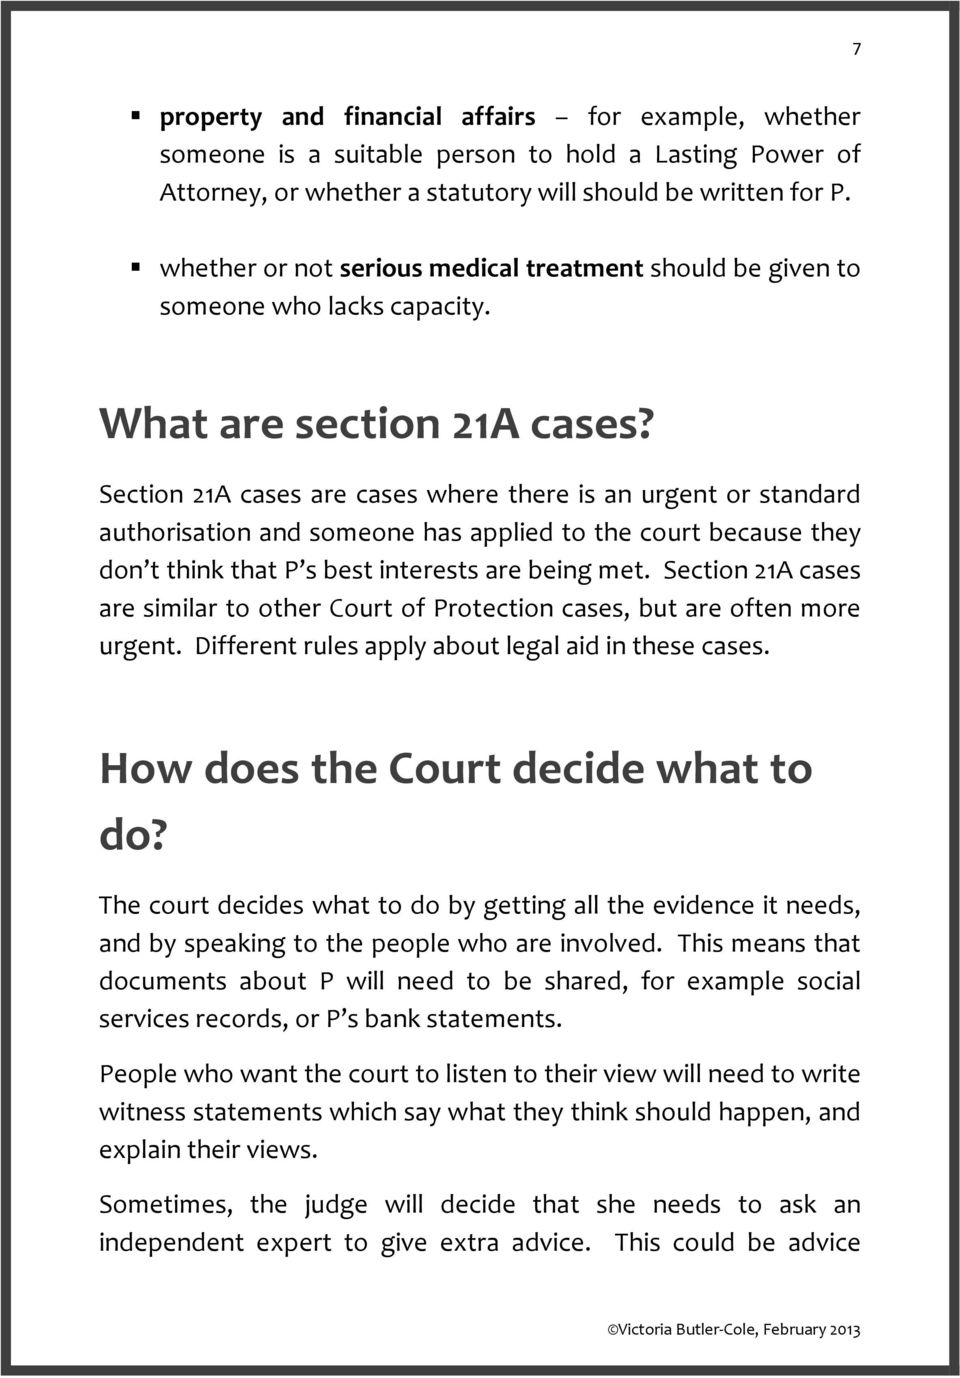 Section 21A cases are cases where there is an urgent or standard authorisation and someone has applied to the court because they don t think that P s best interests are being met.